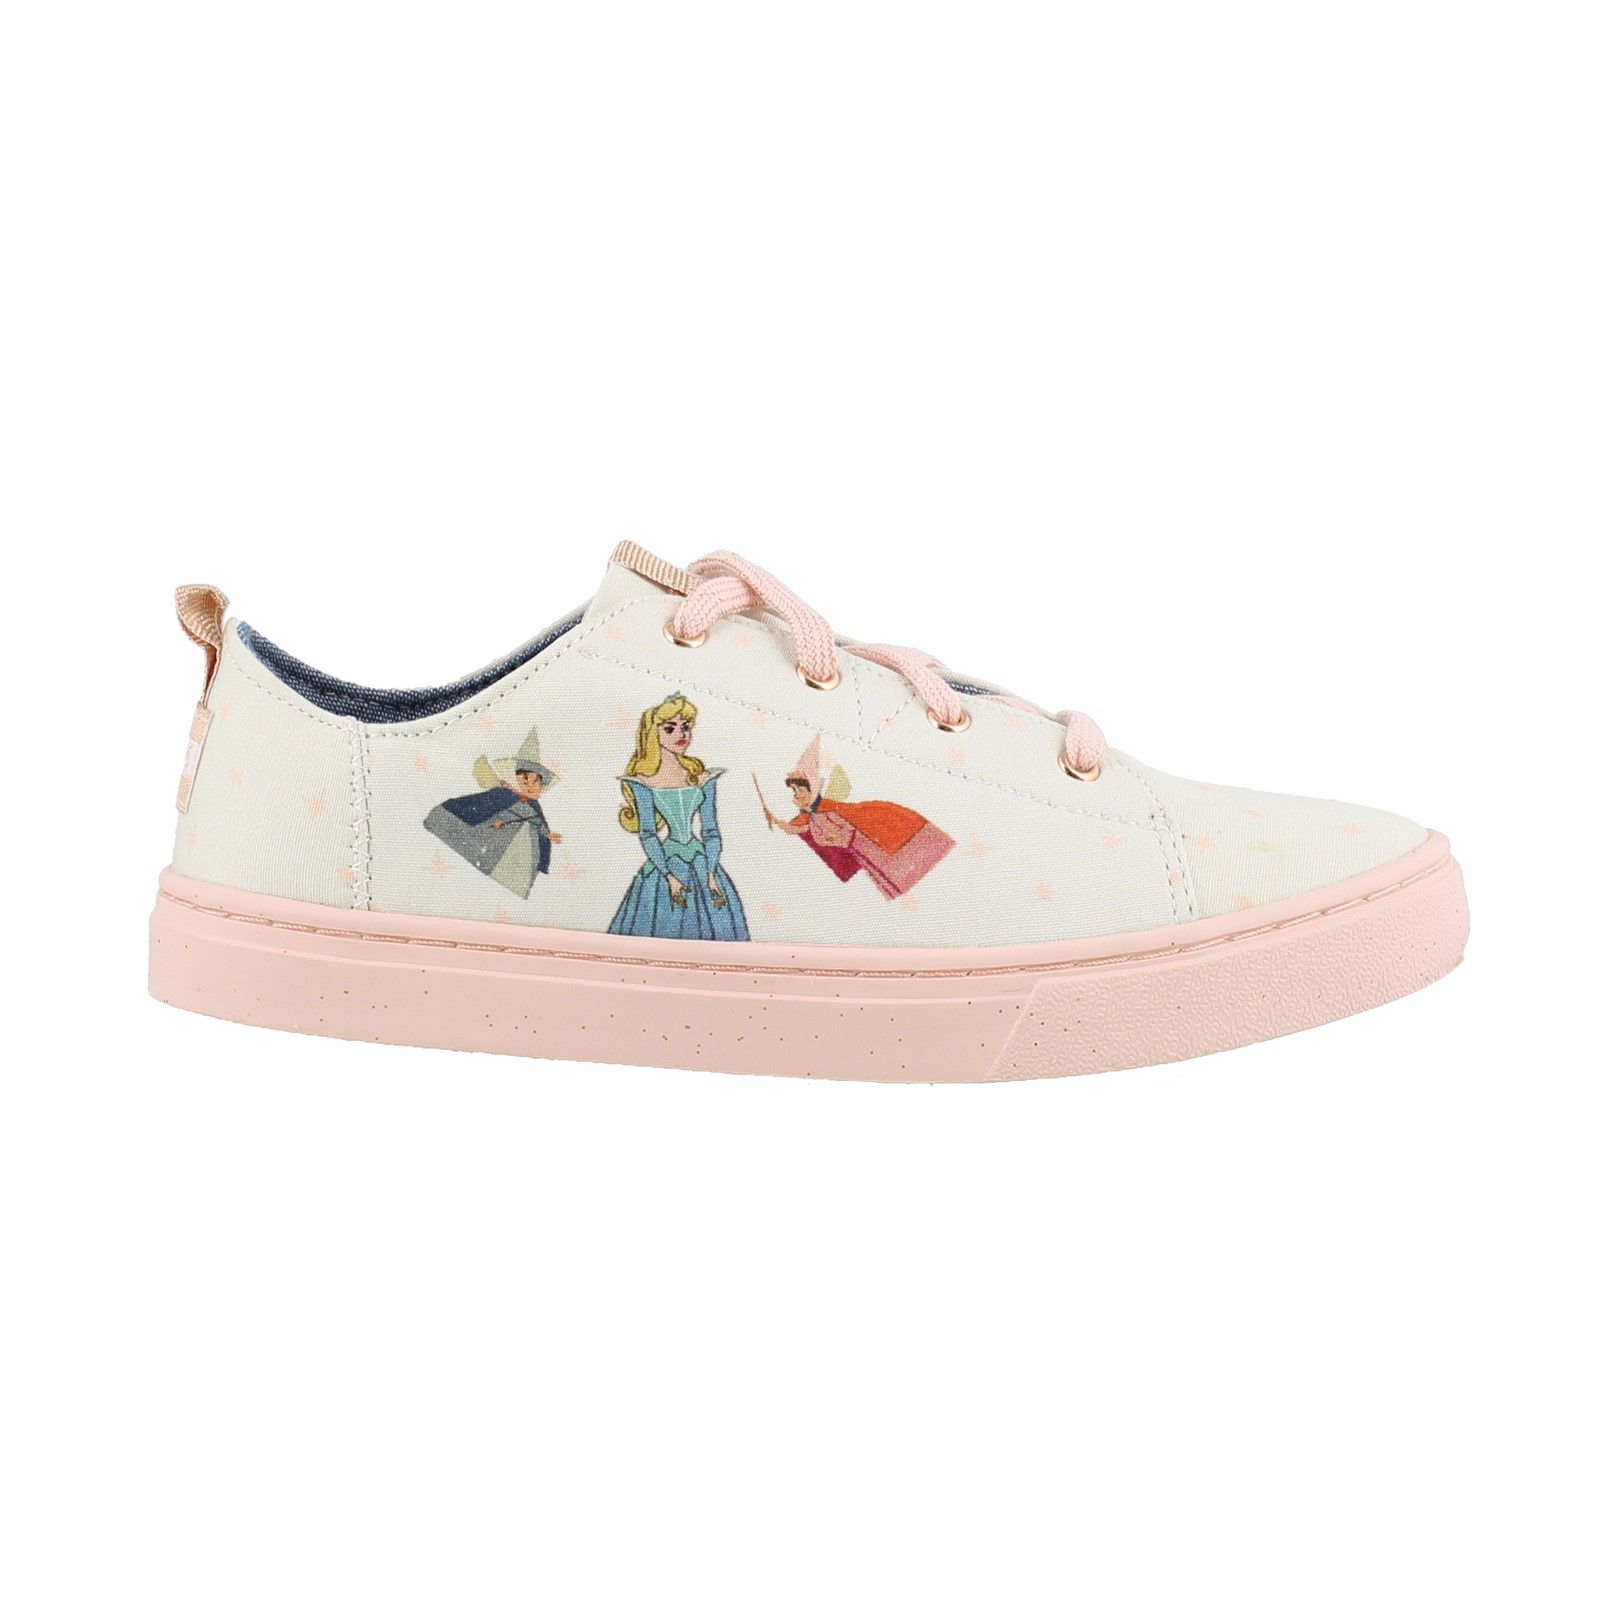 Girl's Toms, Lenny Disney Shoe - Little Kid & Big Kid